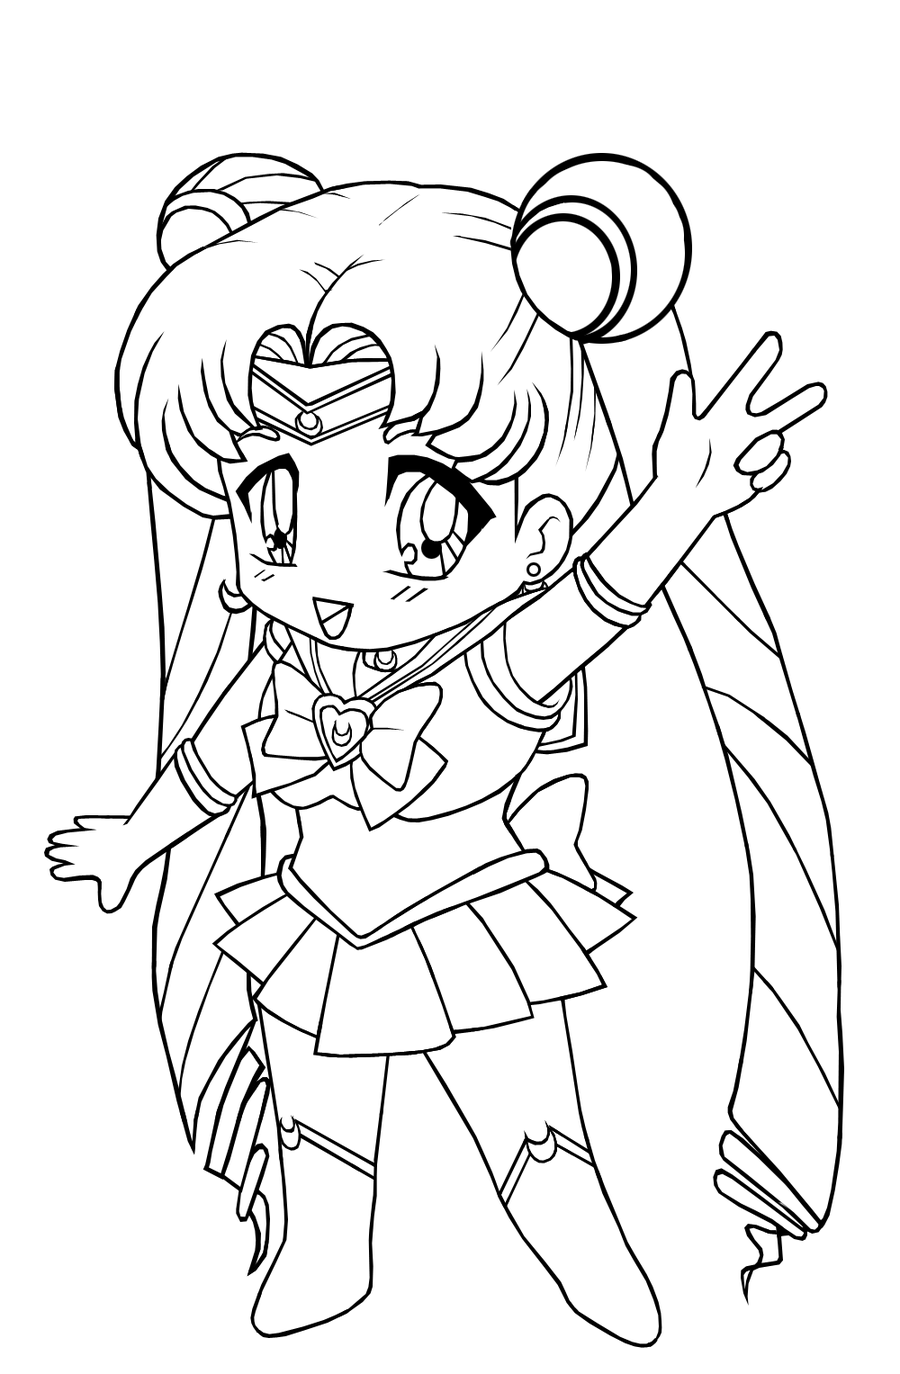 cat girl anime coloring pages anime cat girl coloring pages coloring home anime girl coloring cat pages